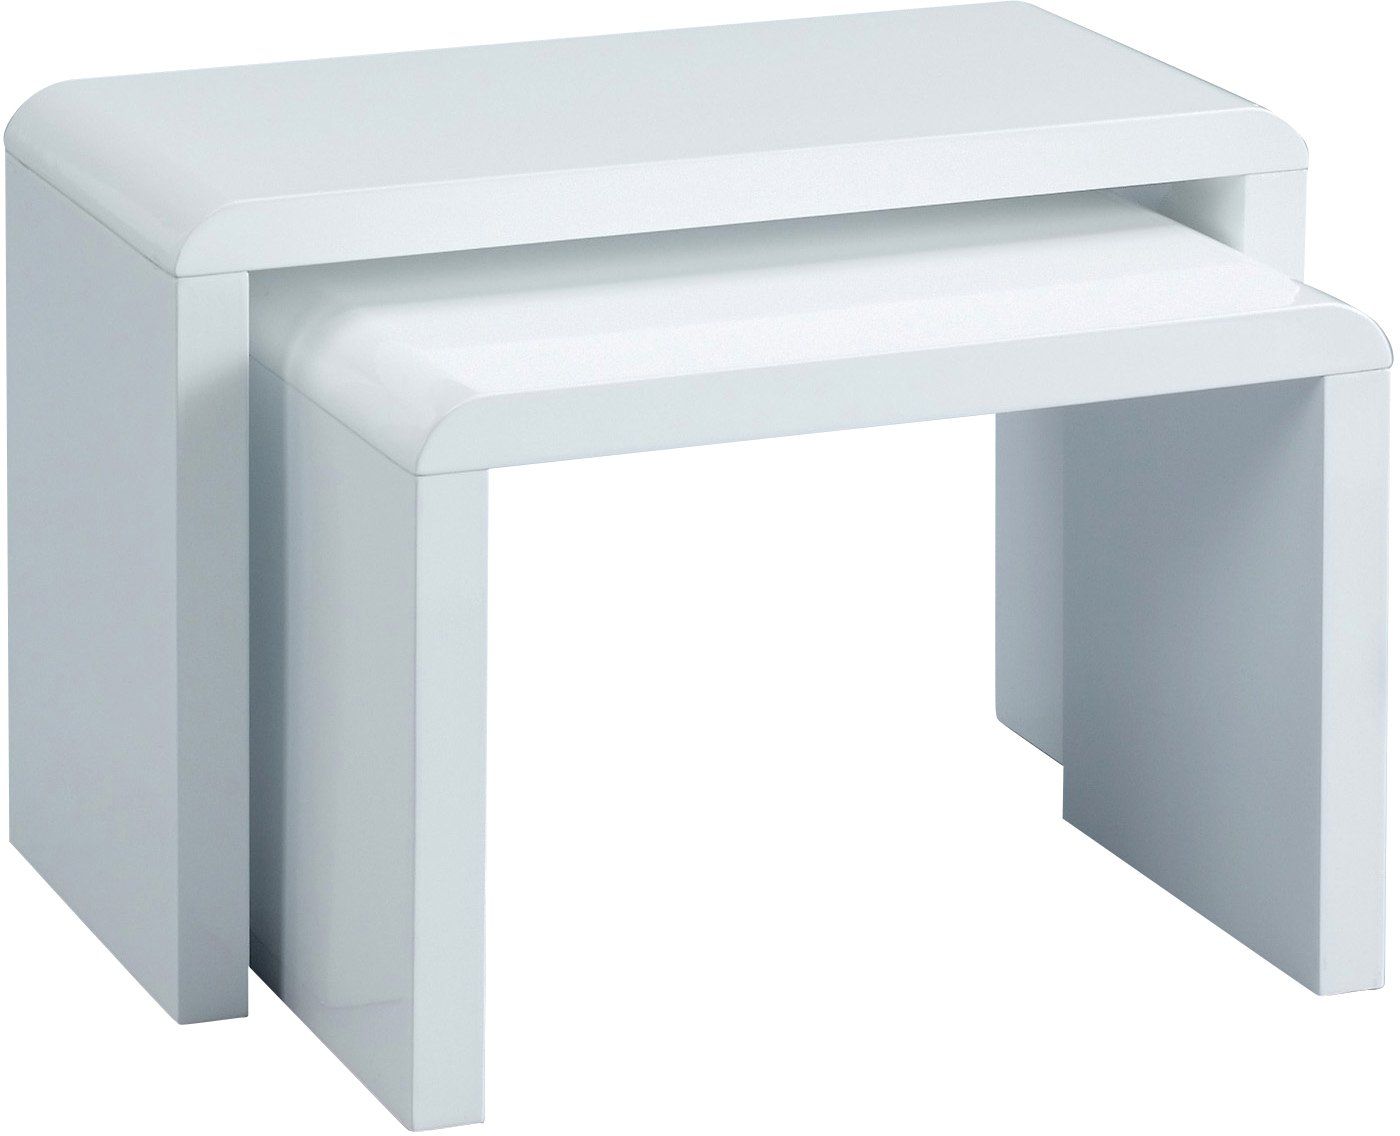 HomeTrends4You 510950 Lot de 2 tables gigognes - 59 x 41 x 30 cm - blanc brillant